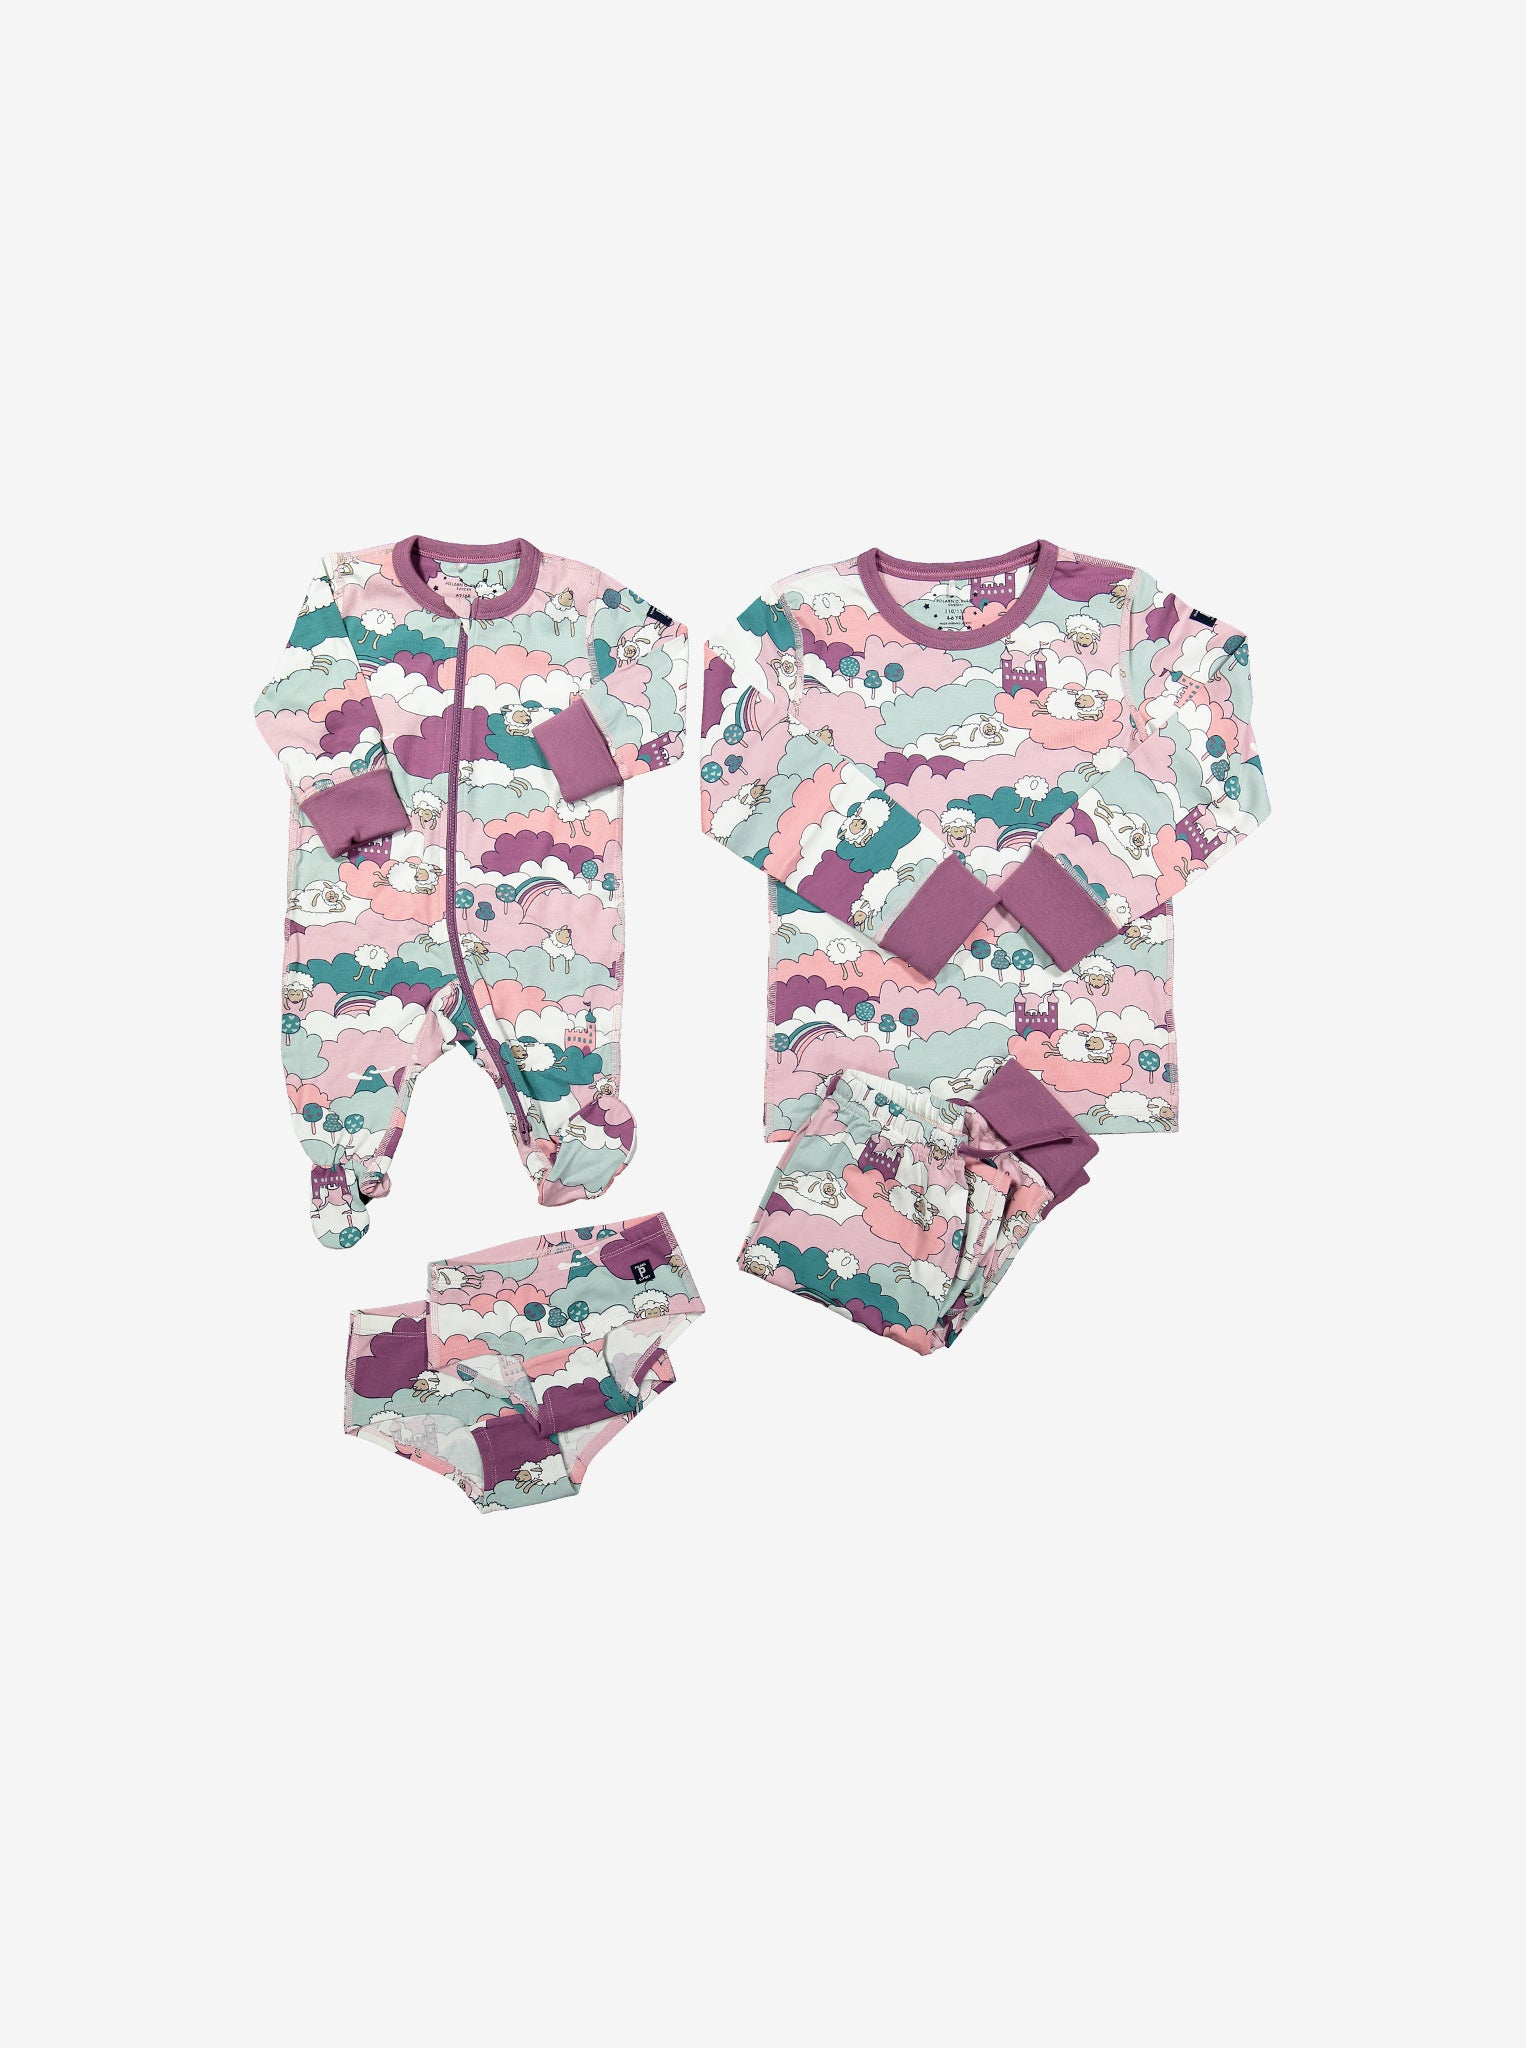 Sleepy Sheep Kids Onesie Pyjamas